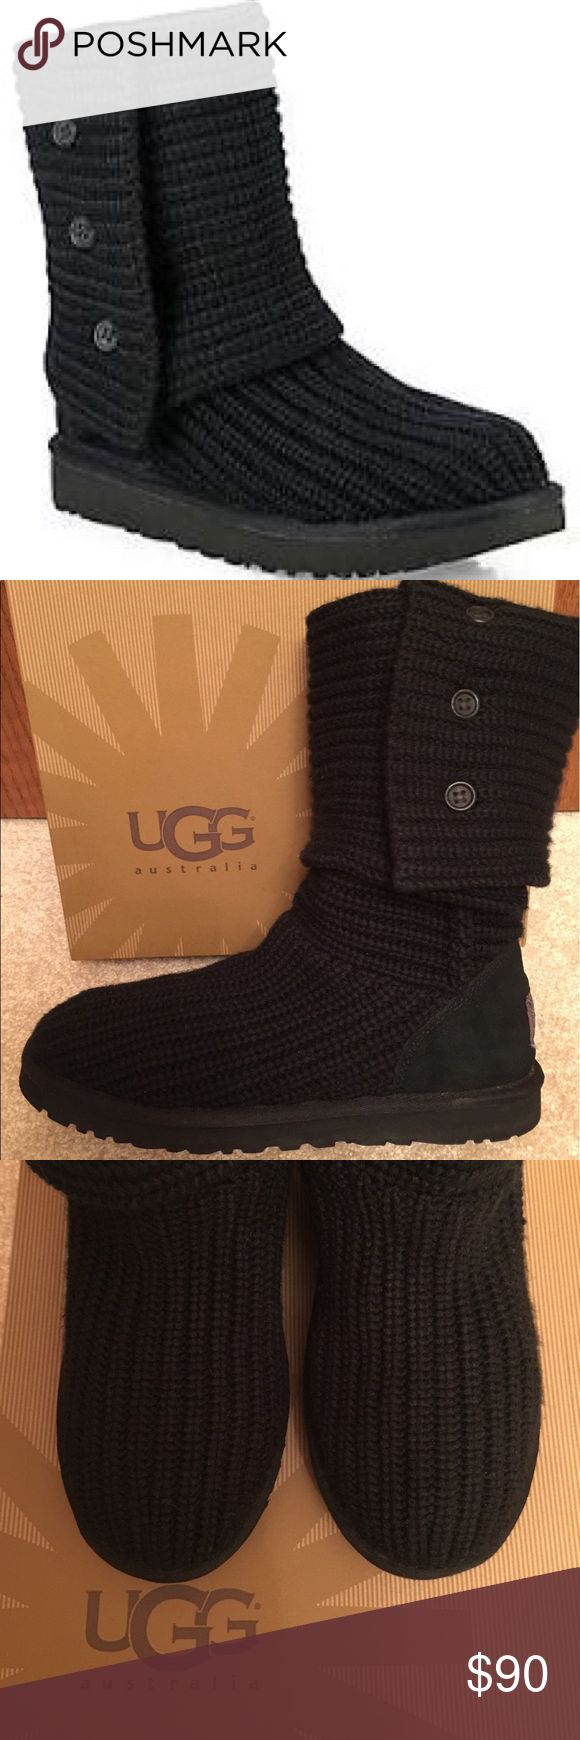 UGG Classic Cardy Knit Boots This adorable rib-knit boot is so cozy, especially with a genuine shearling lining for warmth. Functional buttons allow the shaft to be worn tall or folded over for a cute, cuffed look. Pull-on style with grip sole. UGG Shoes Winter & Rain Boots